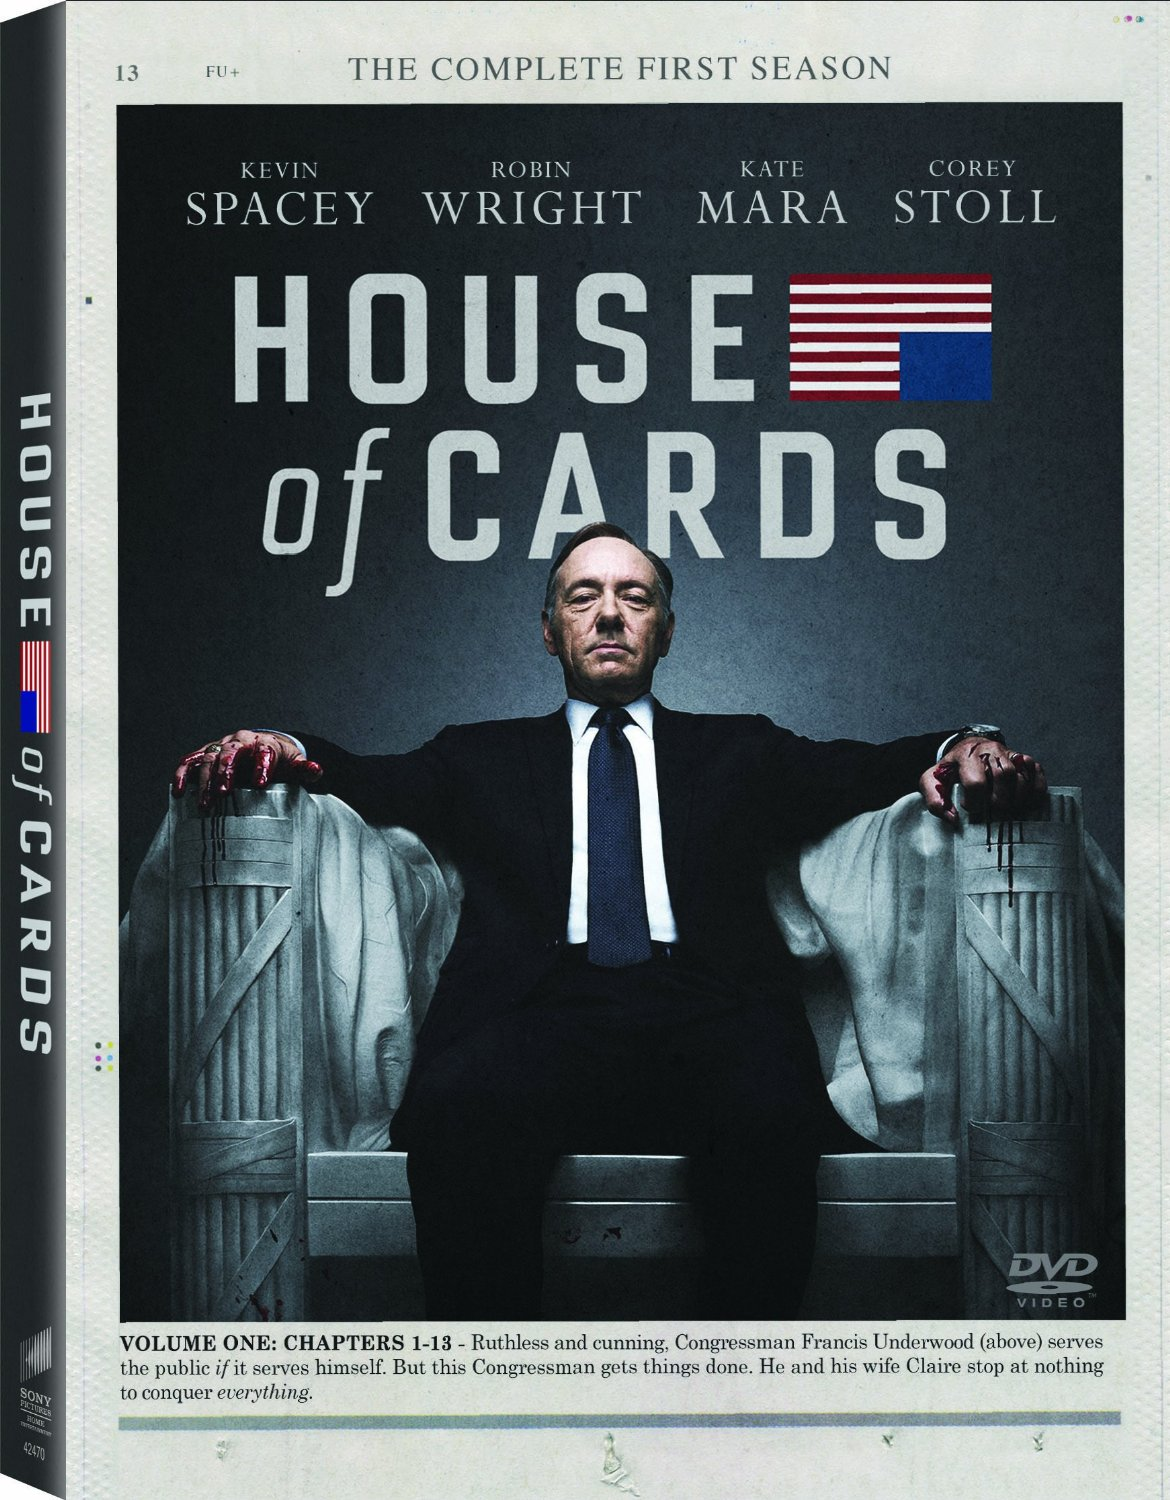 House of cards 시즌1(DVD) : The complete first season image